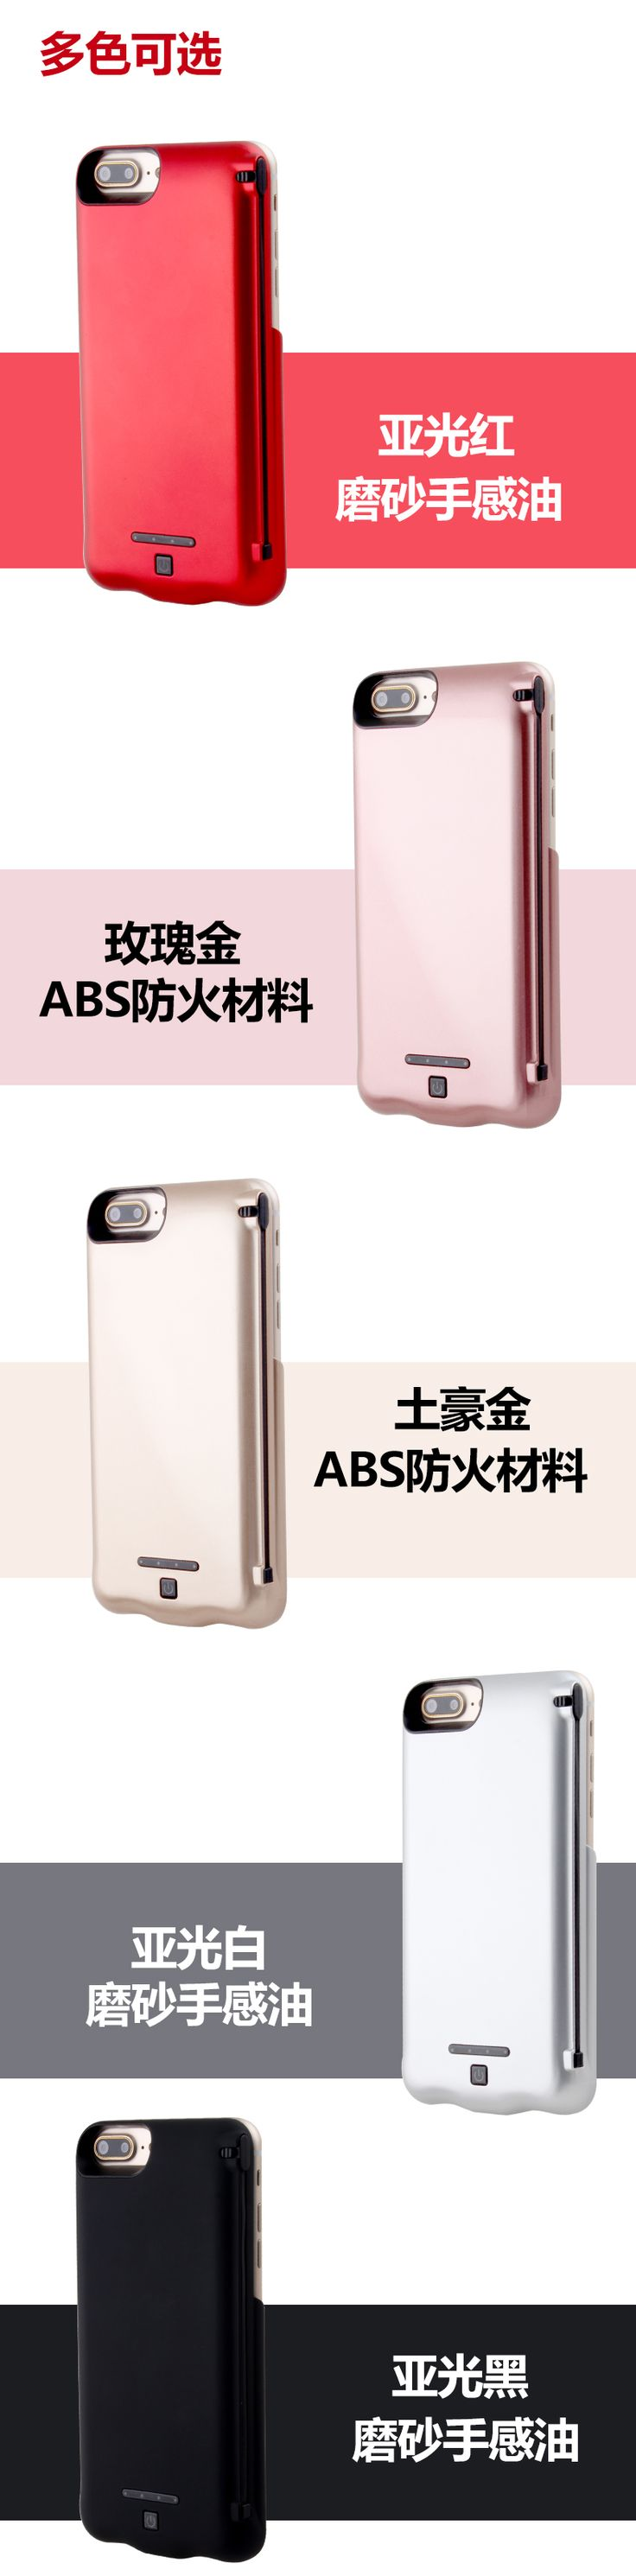 13 best power bank case images on pinterest banks dongguan and